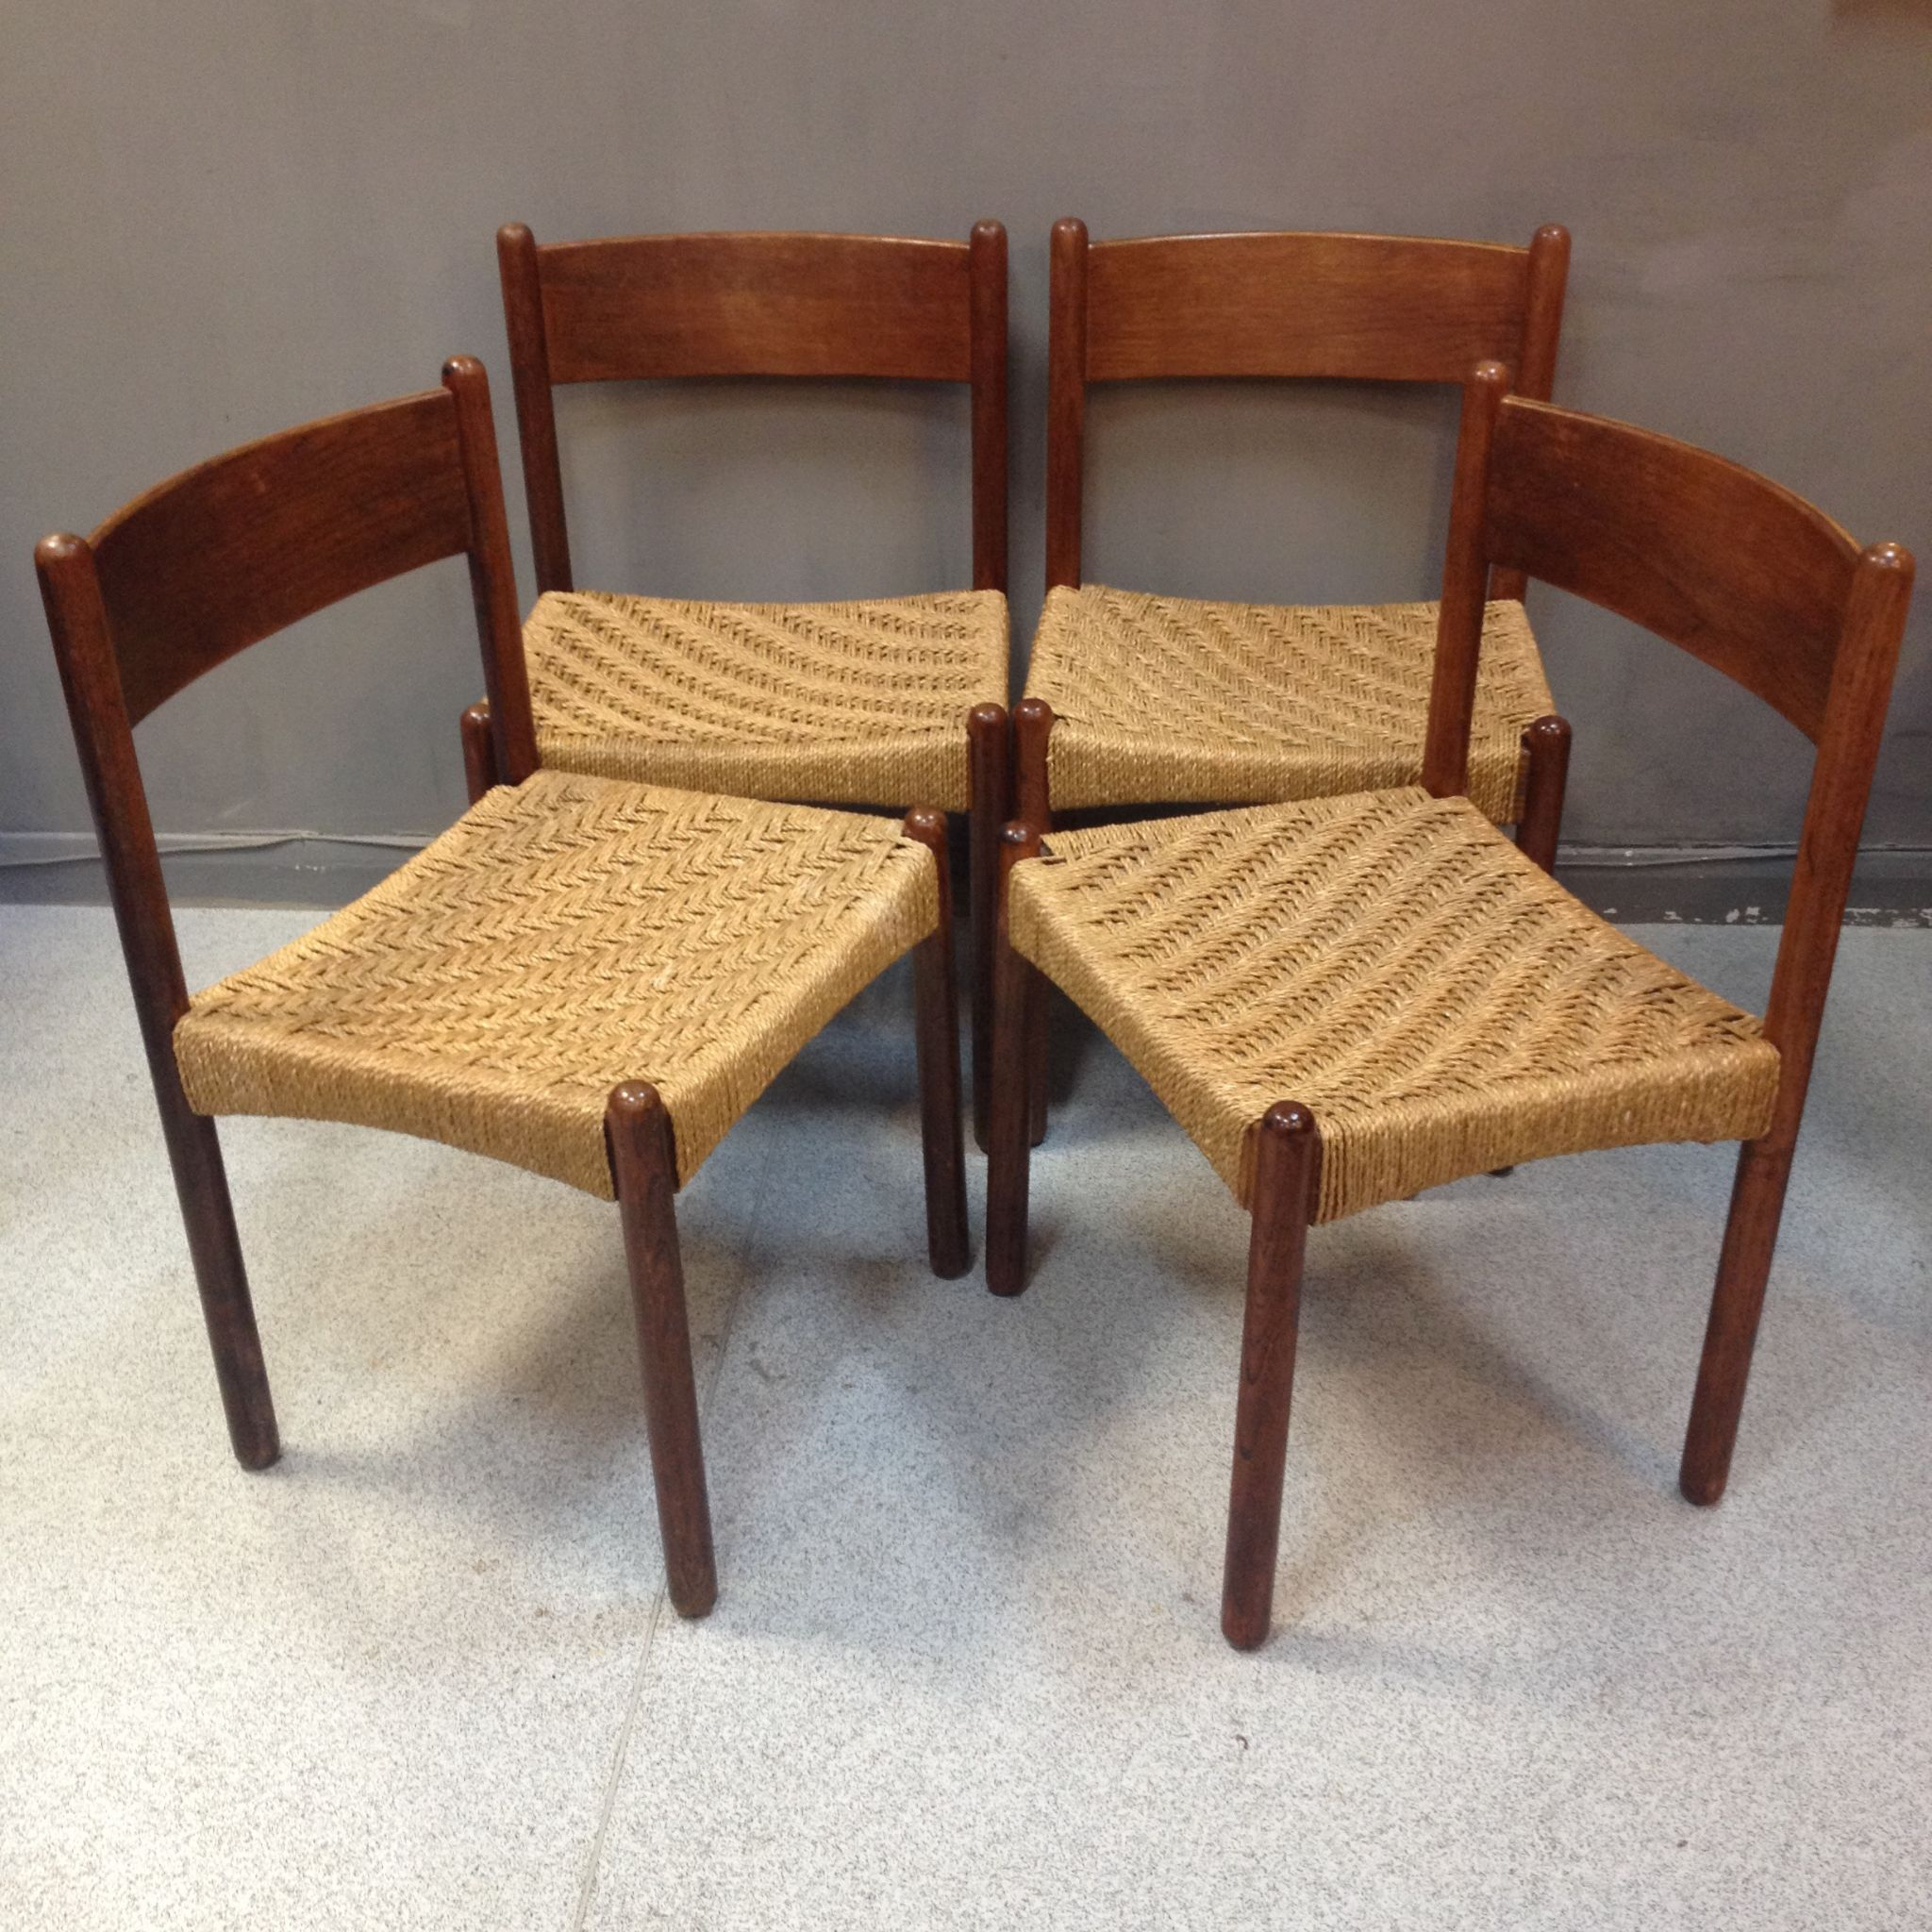 Seagrass Dining Chairs Mid Century Danish Dining Chairs With Seagrass Seats